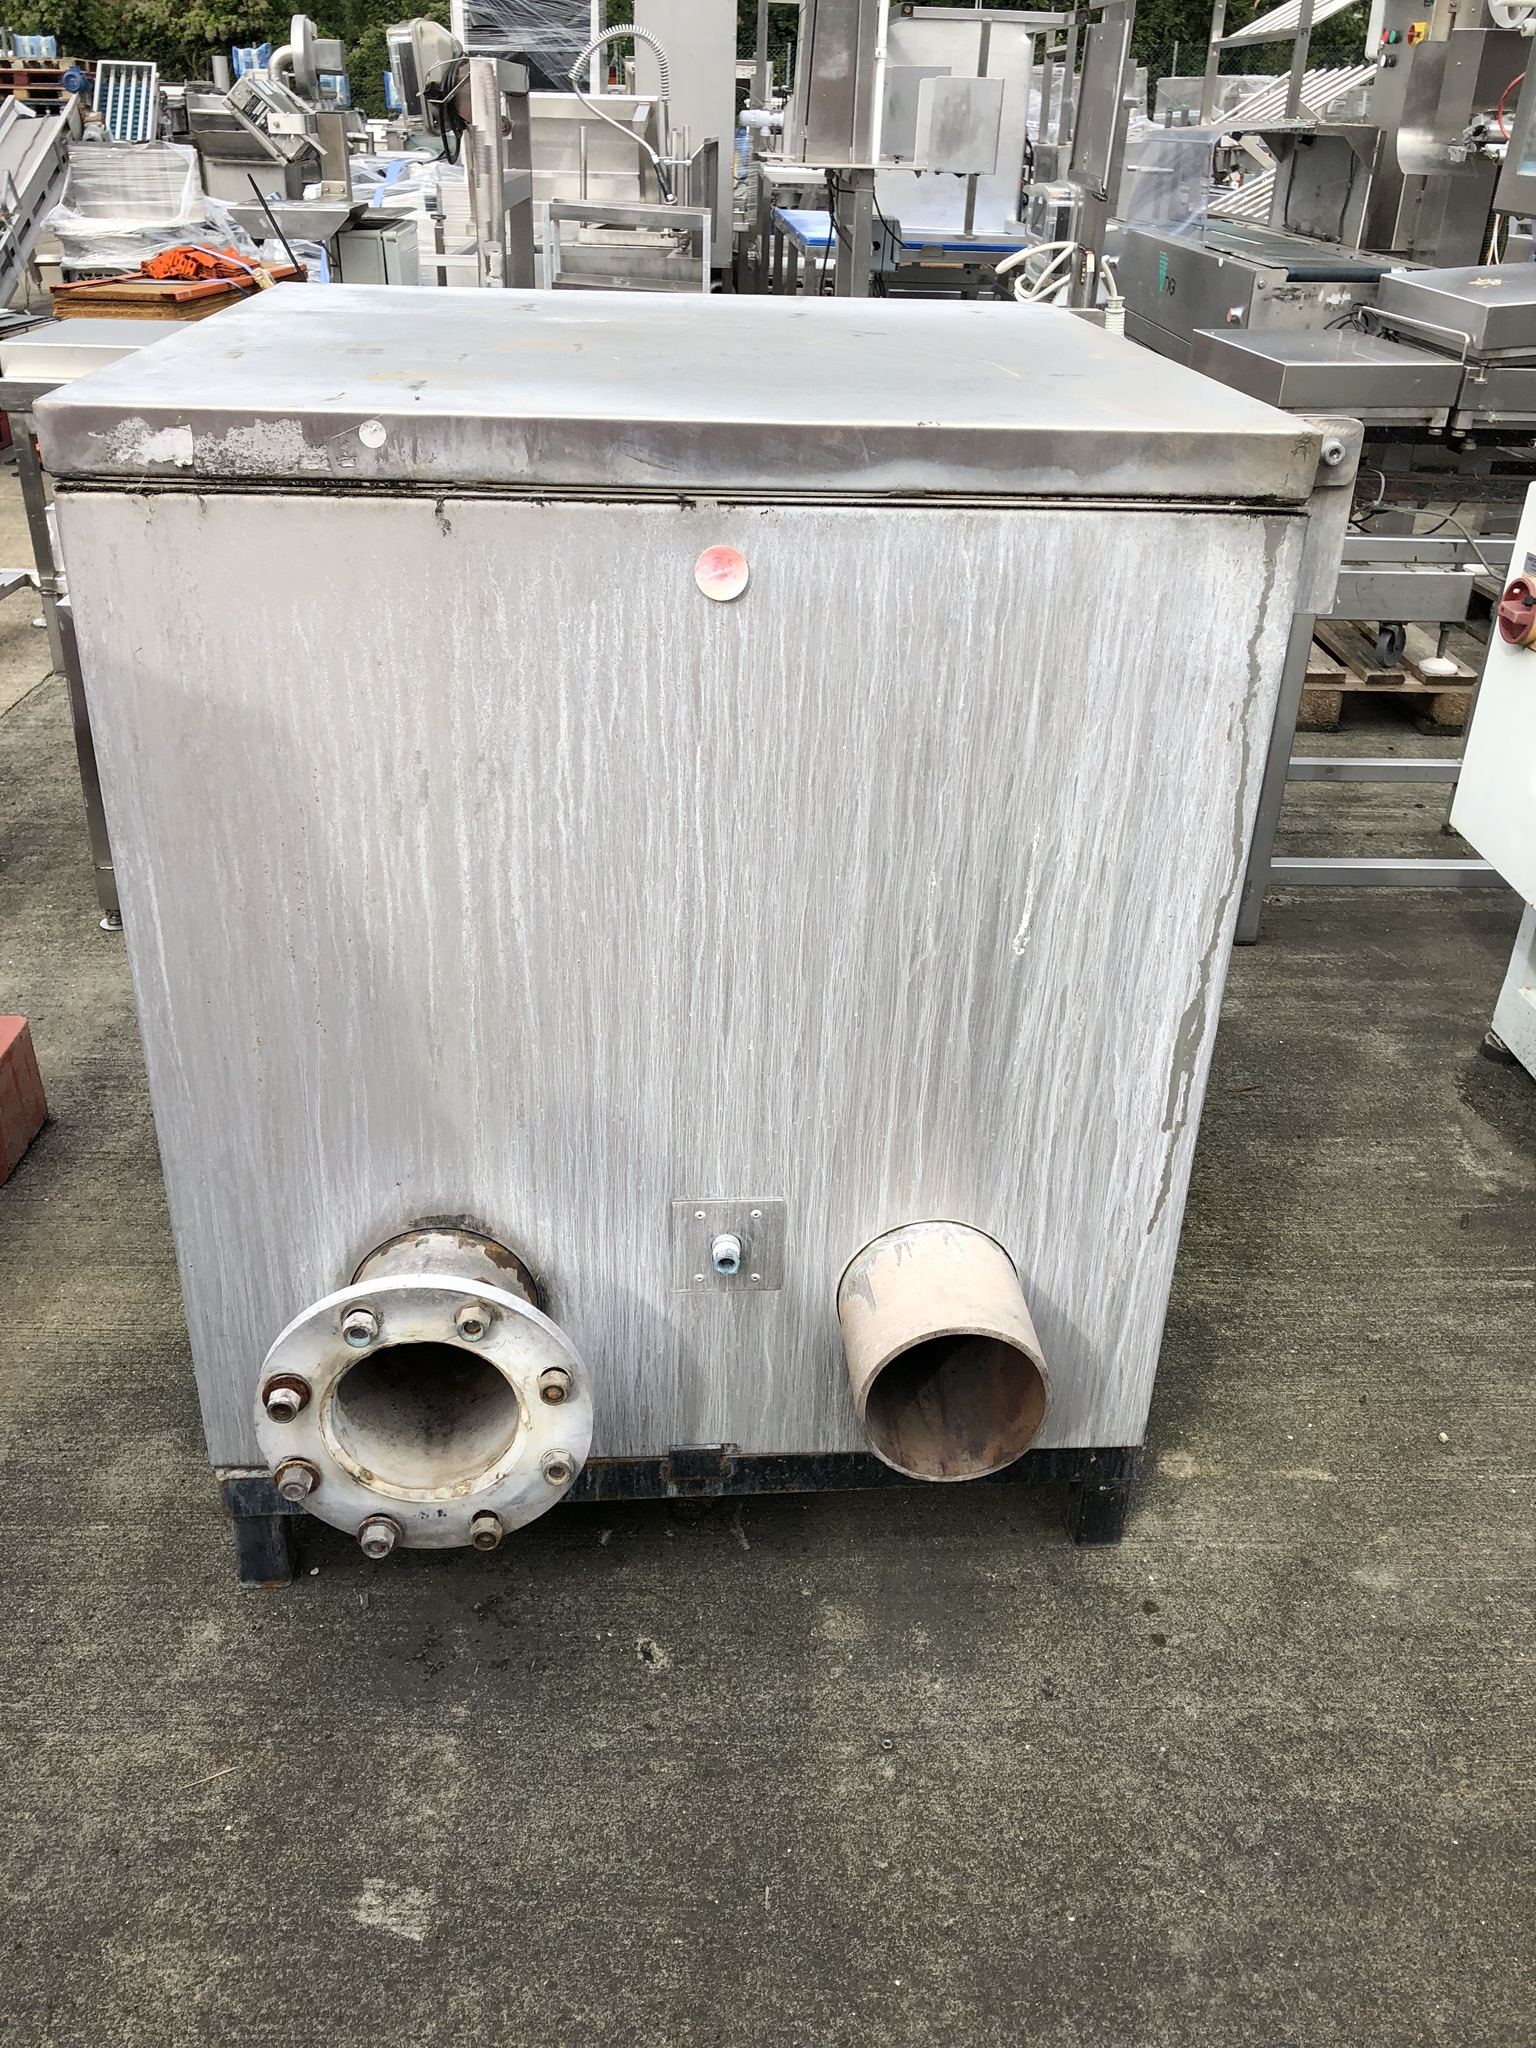 Gas Fired Heated Tank, approx. 0.9m x 0.9m x 1m, lift out charge - £20 - Image 4 of 4